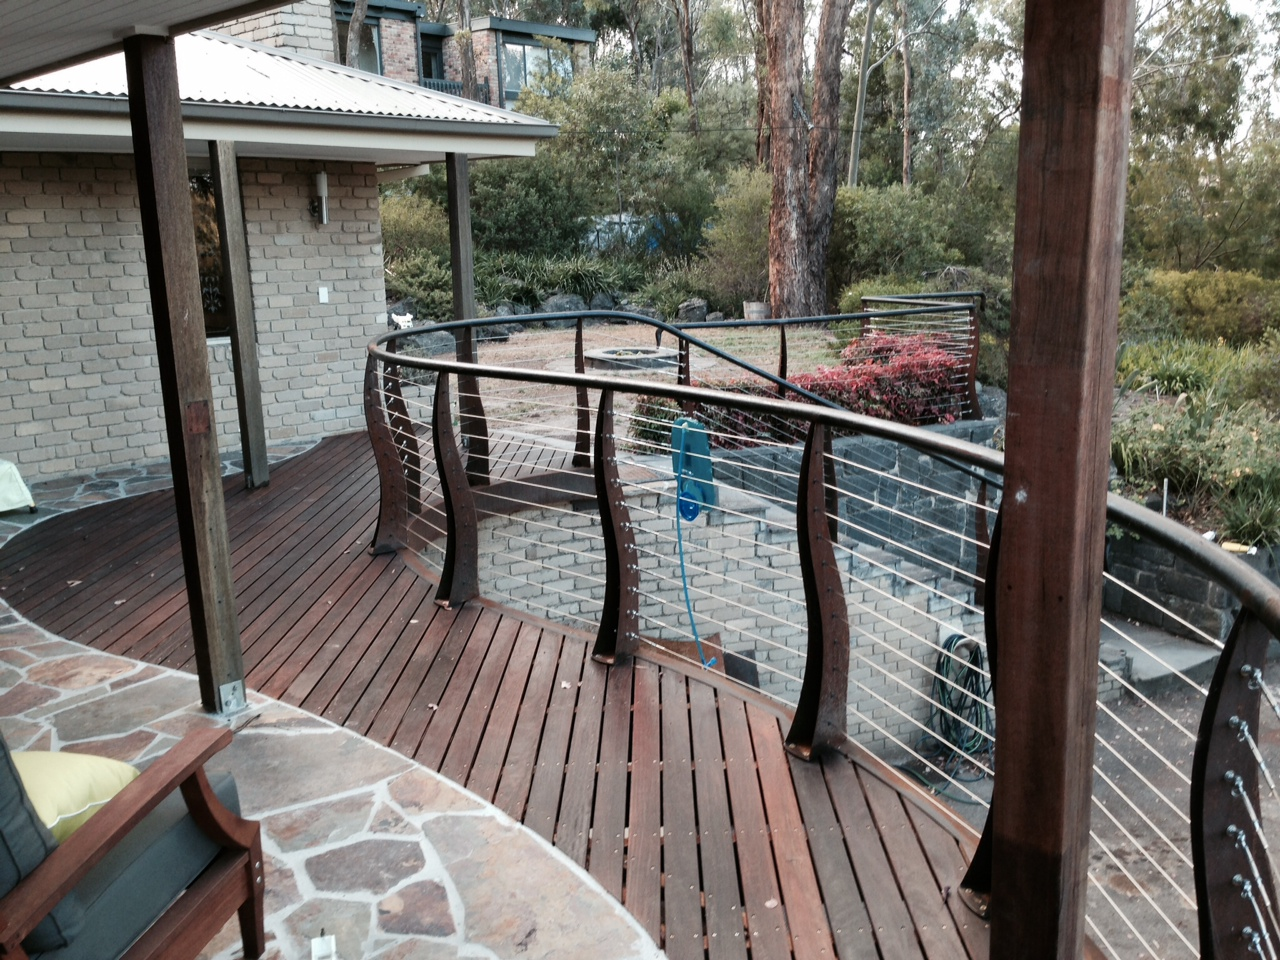 Ironbark Decking on Balcony 86 x 19mm